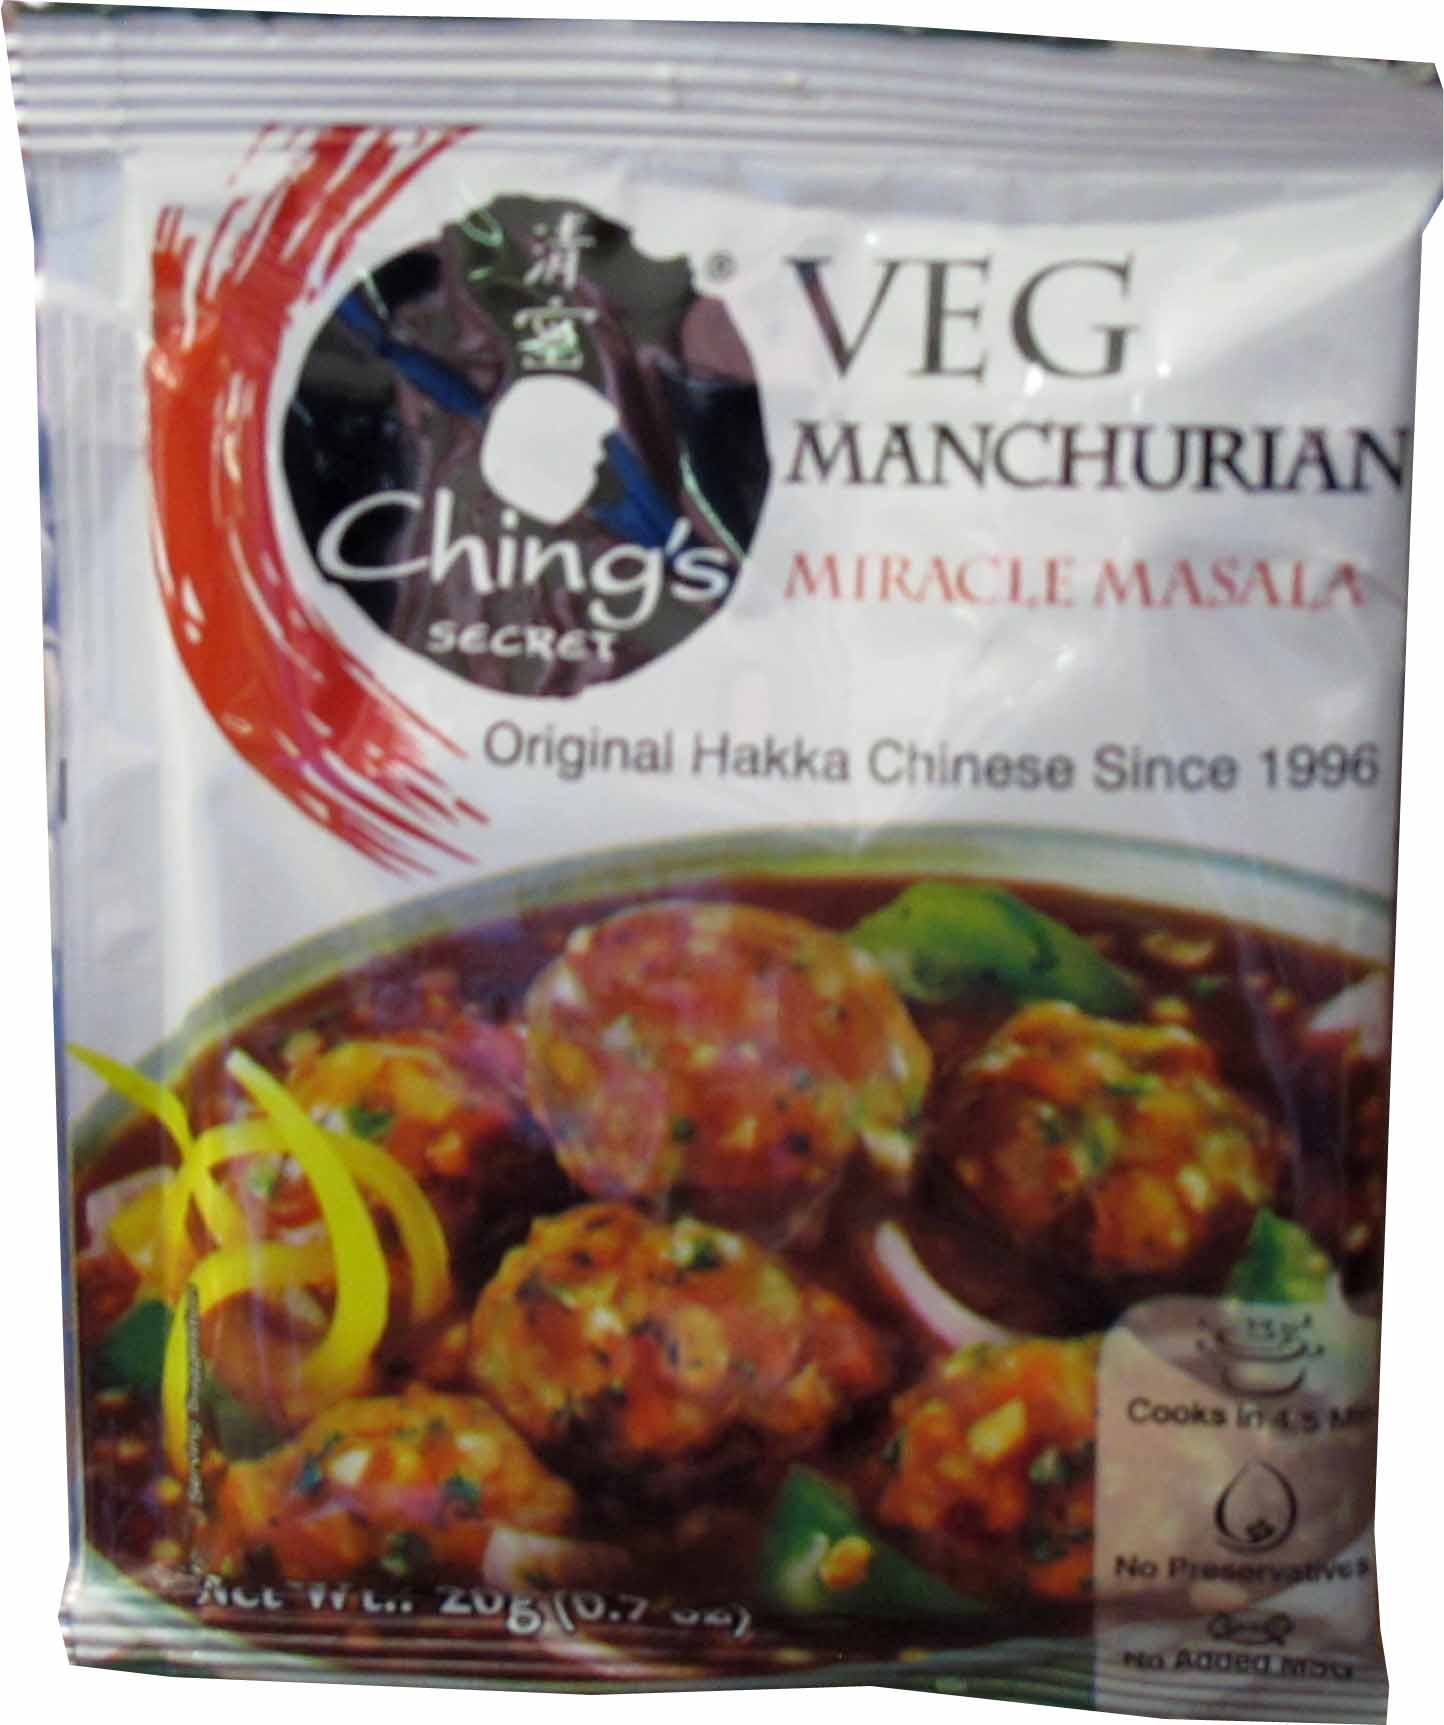 chings veg manchurian miracle masala